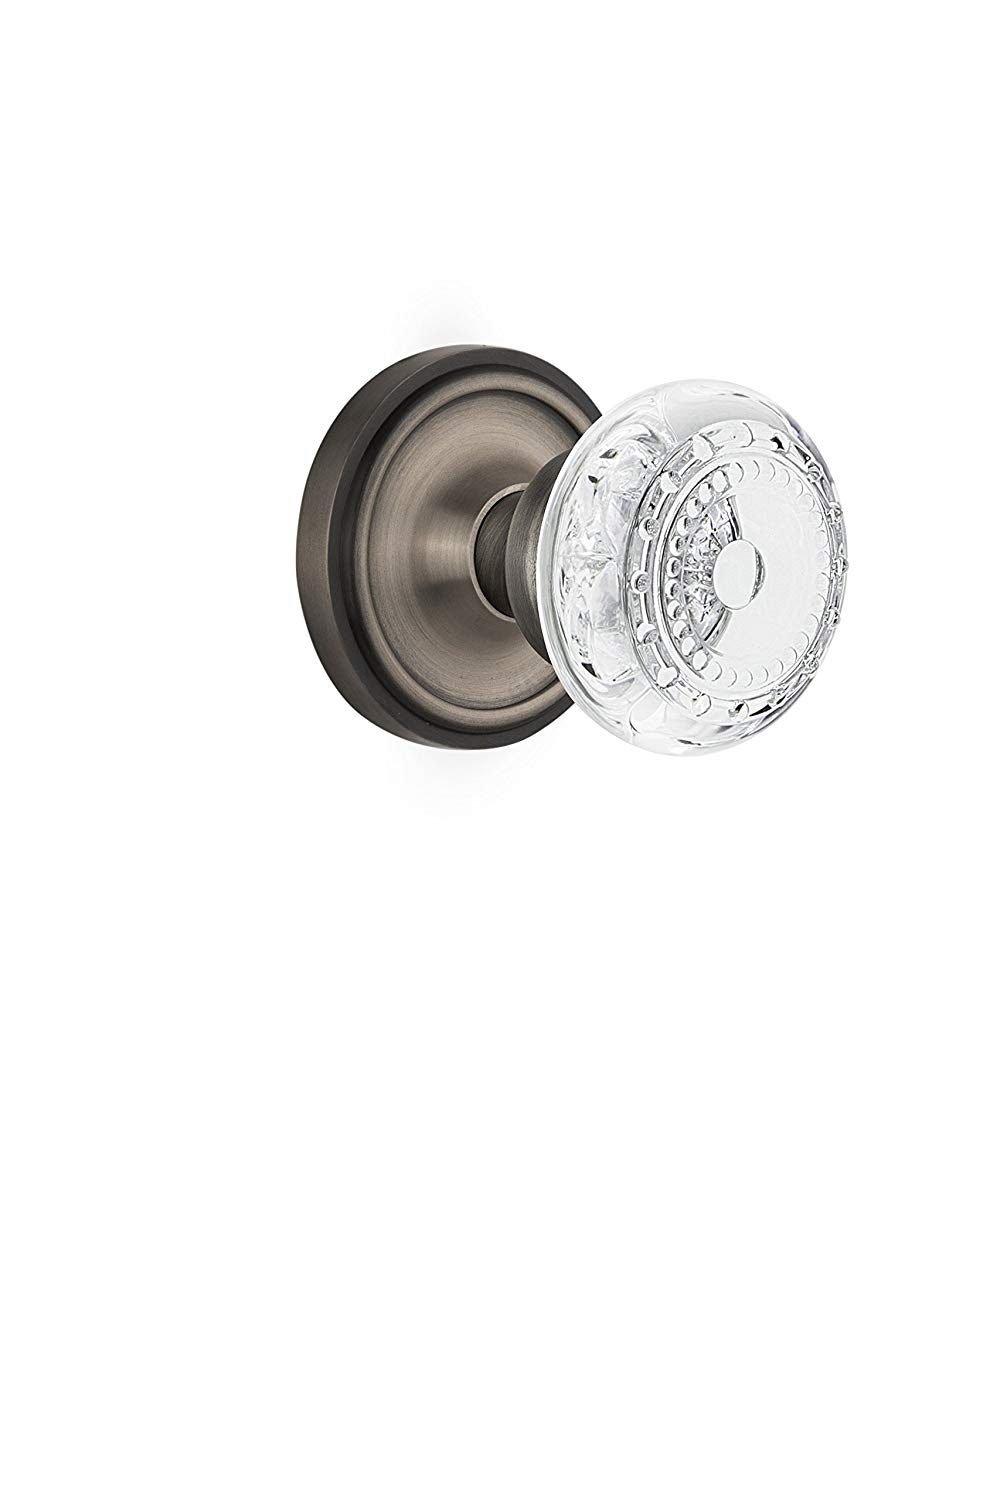 """Nostalgic Warehouse 752200 Classic Rosette Privacy Crystal Meadows Door Knob, Backset Size: 2.375"""", Antique Pewter"""